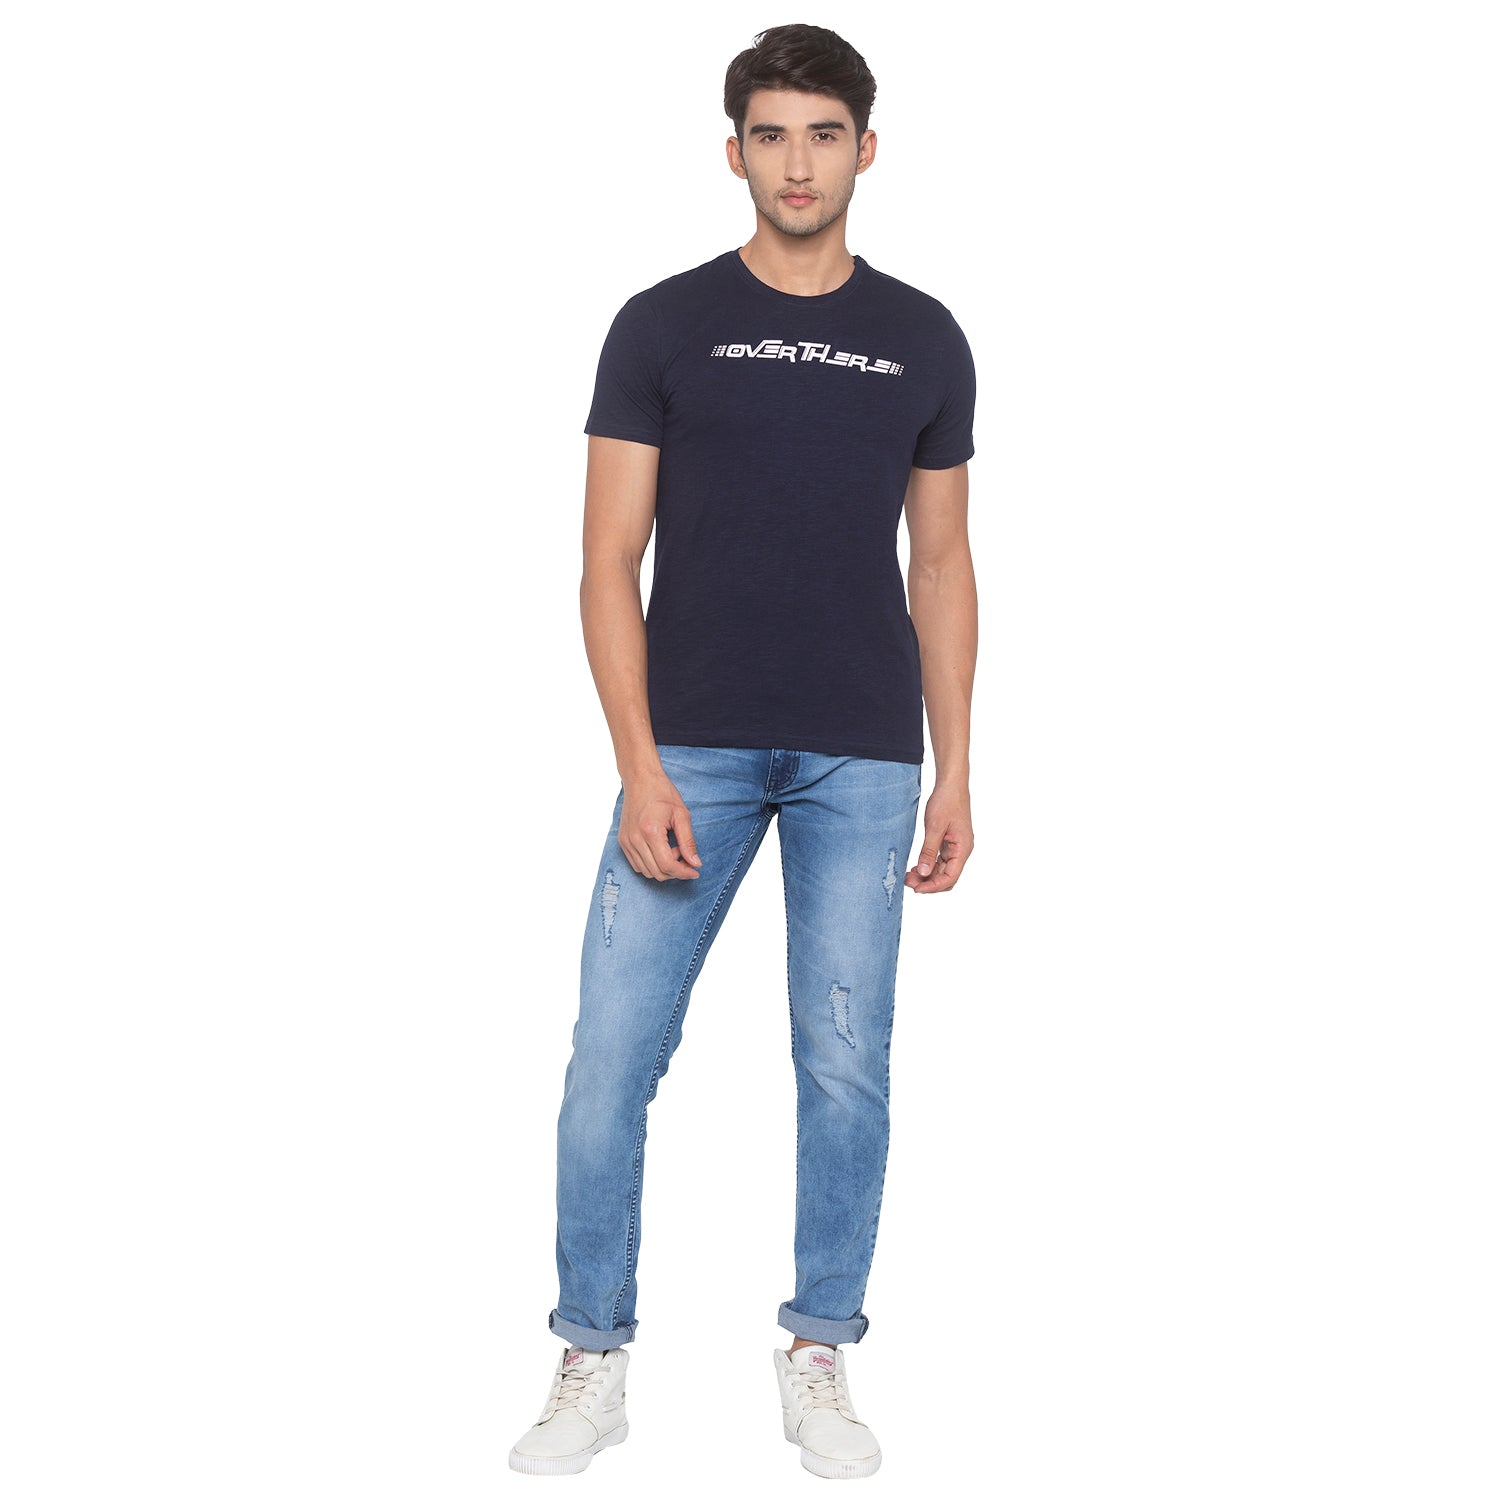 Navy Blue Printed T-Shirt-4